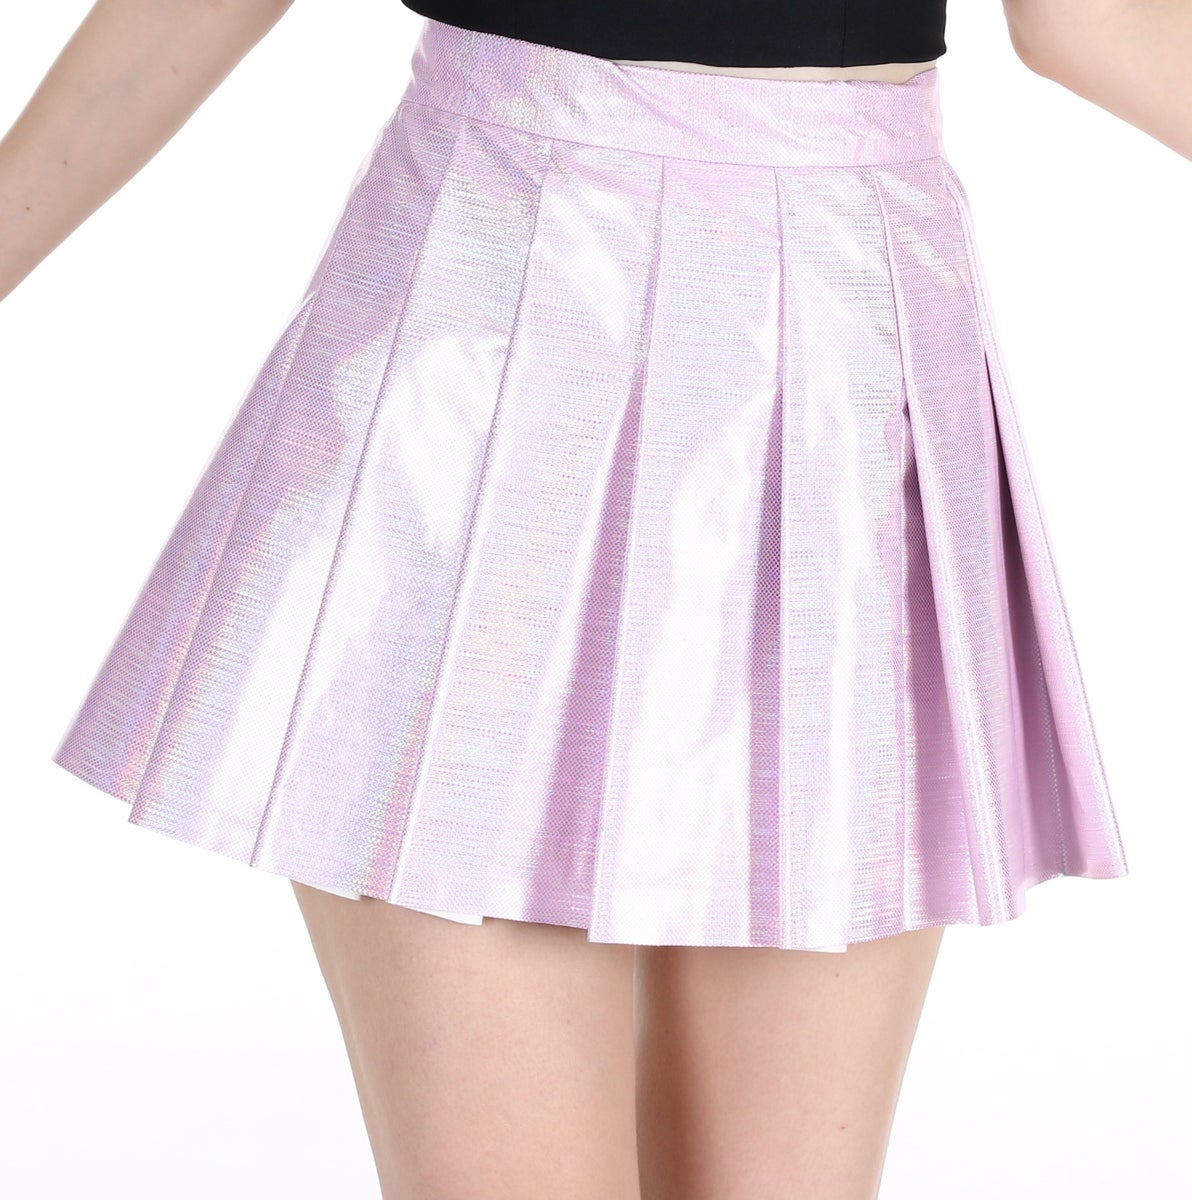 Glitters For Dinner Pink Hologram Pleated Tennis